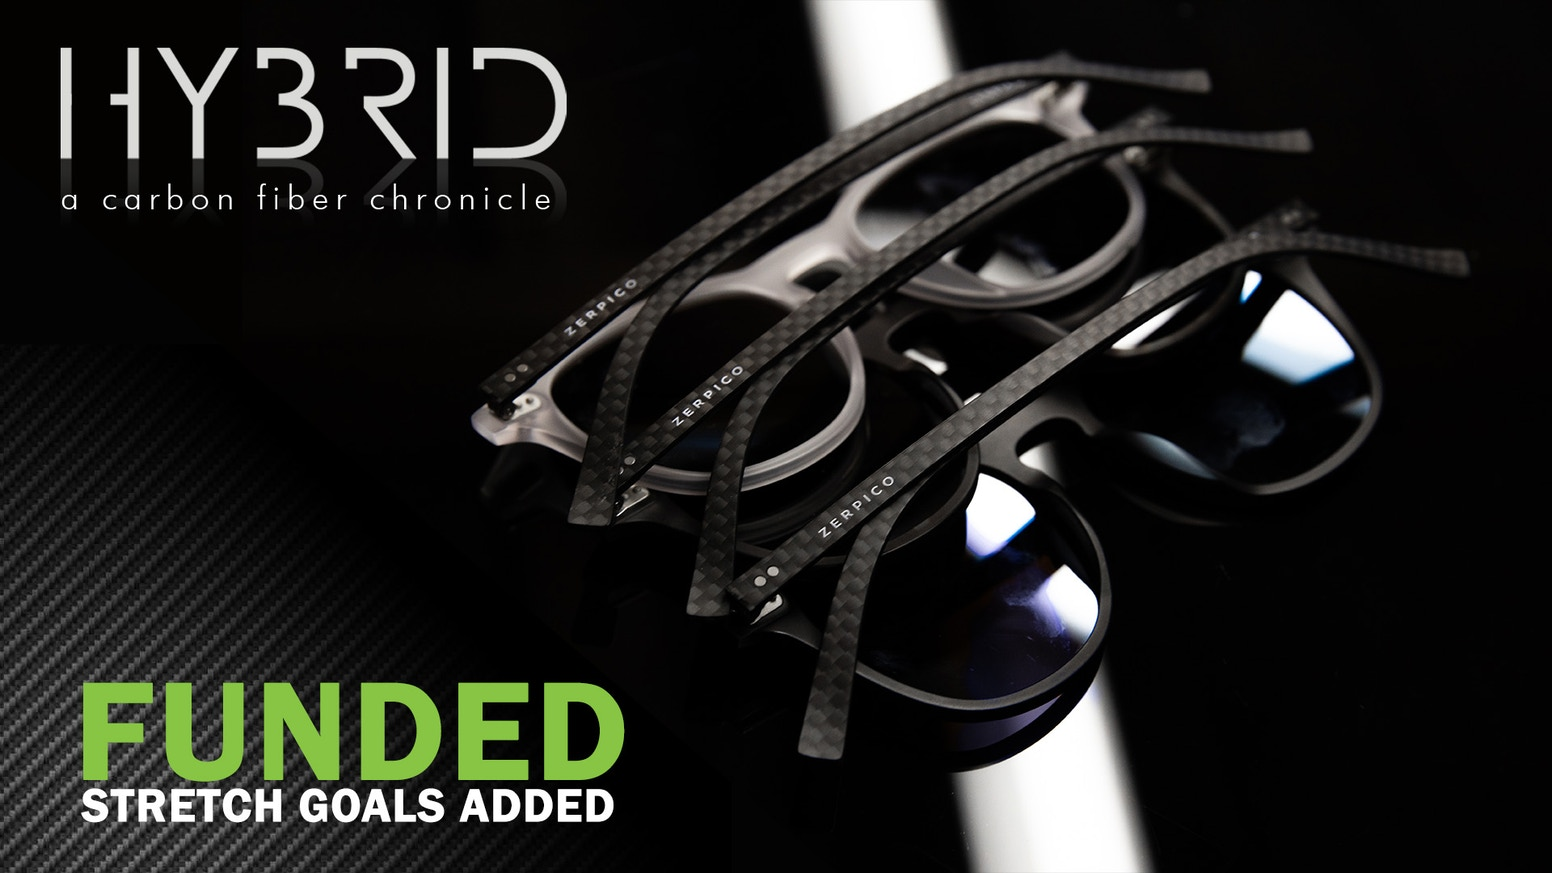 Best of both worlds - Eyewear that can take a beating. A combination of high quality carbon fiber and renewable plant-based acetate.